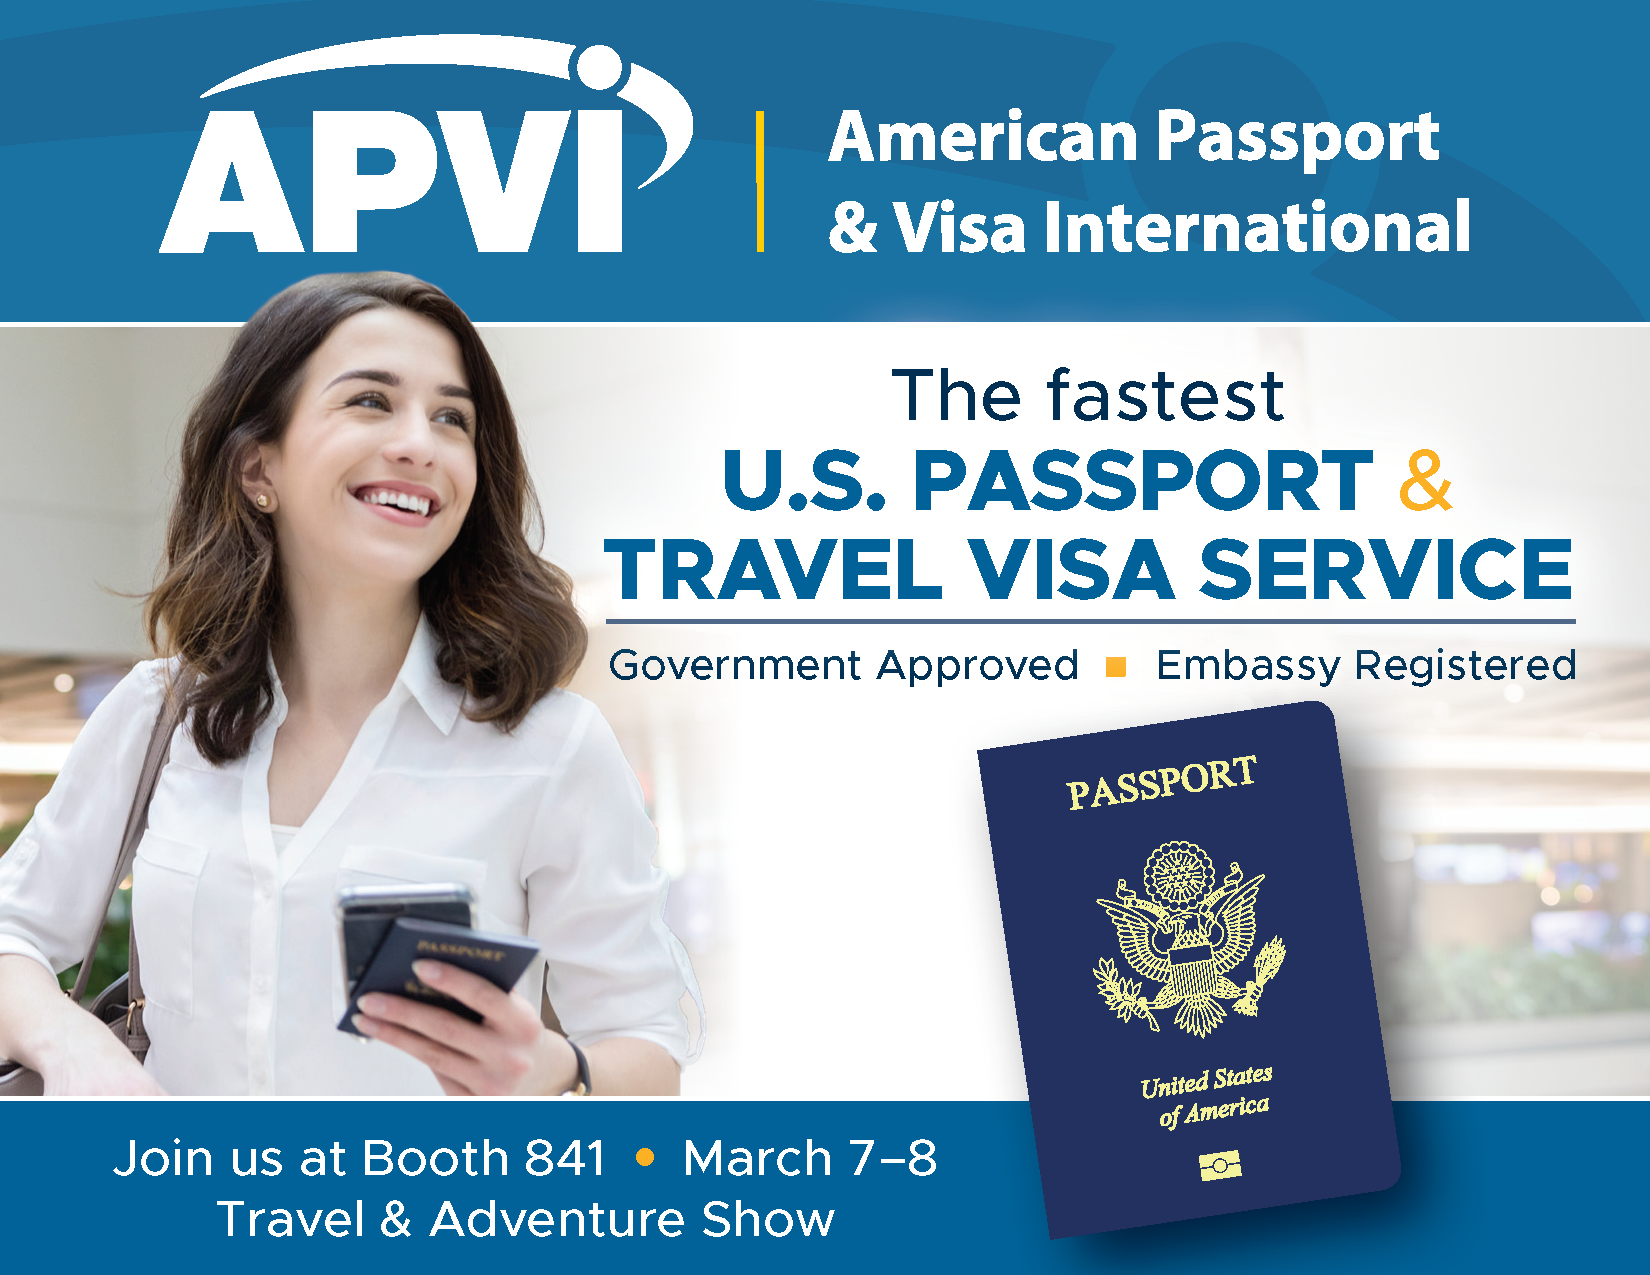 Join APVI at the Travel & Adventure Show in Washington, DC March 7-8!